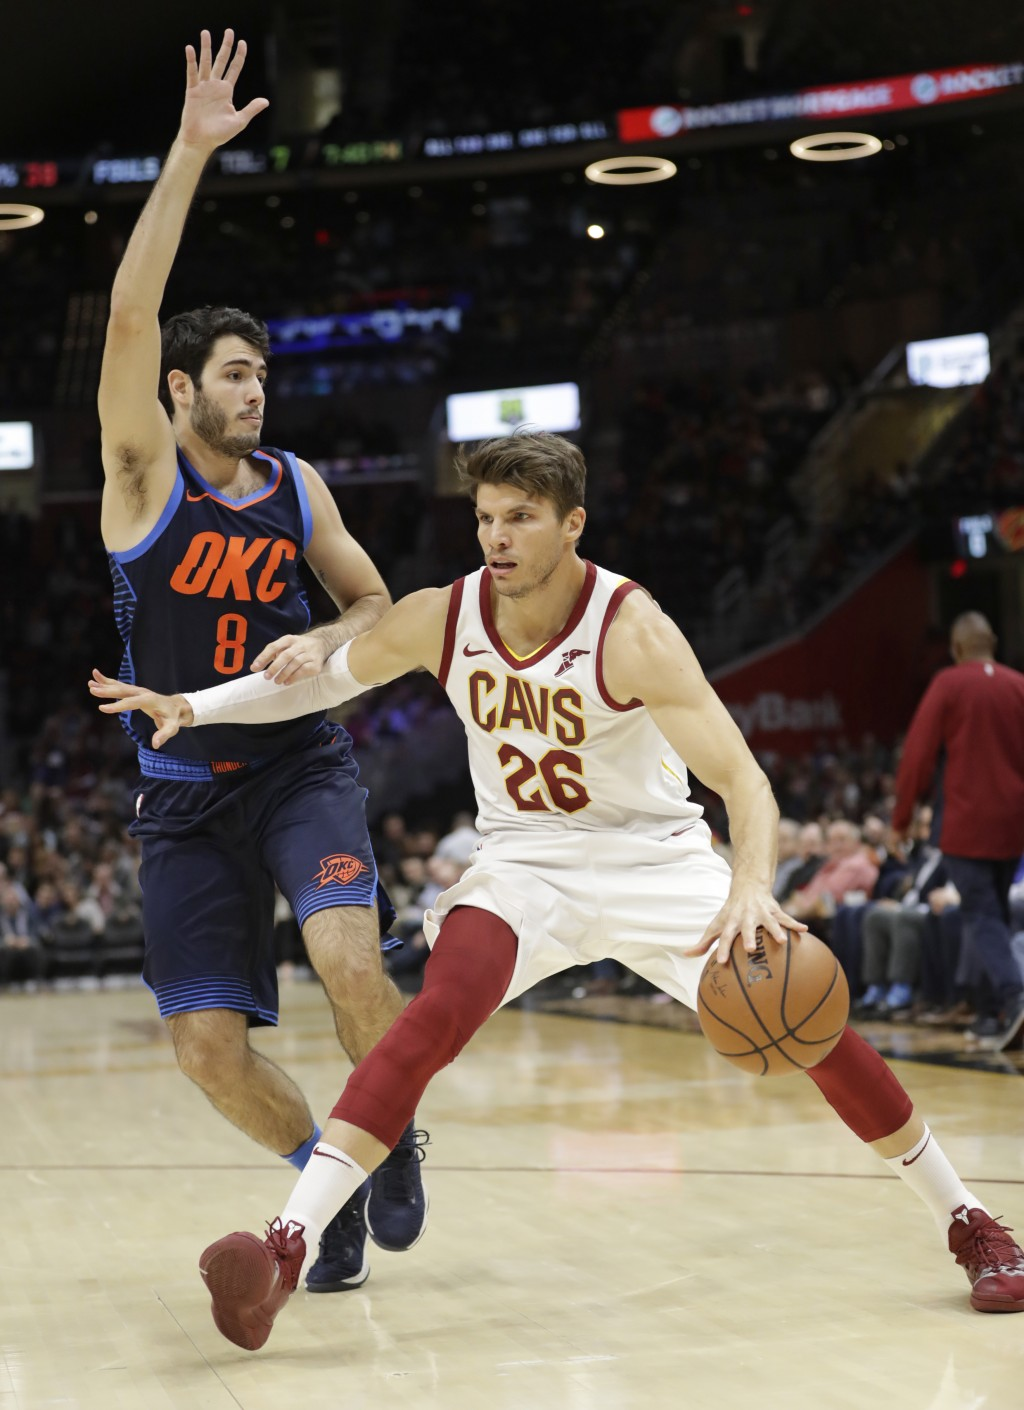 Cleveland Cavaliers' Kyle Korver (26) drives past Oklahoma City Thunder's Alex Abrines (8), of Spain, during the first half of an NBA basketball game